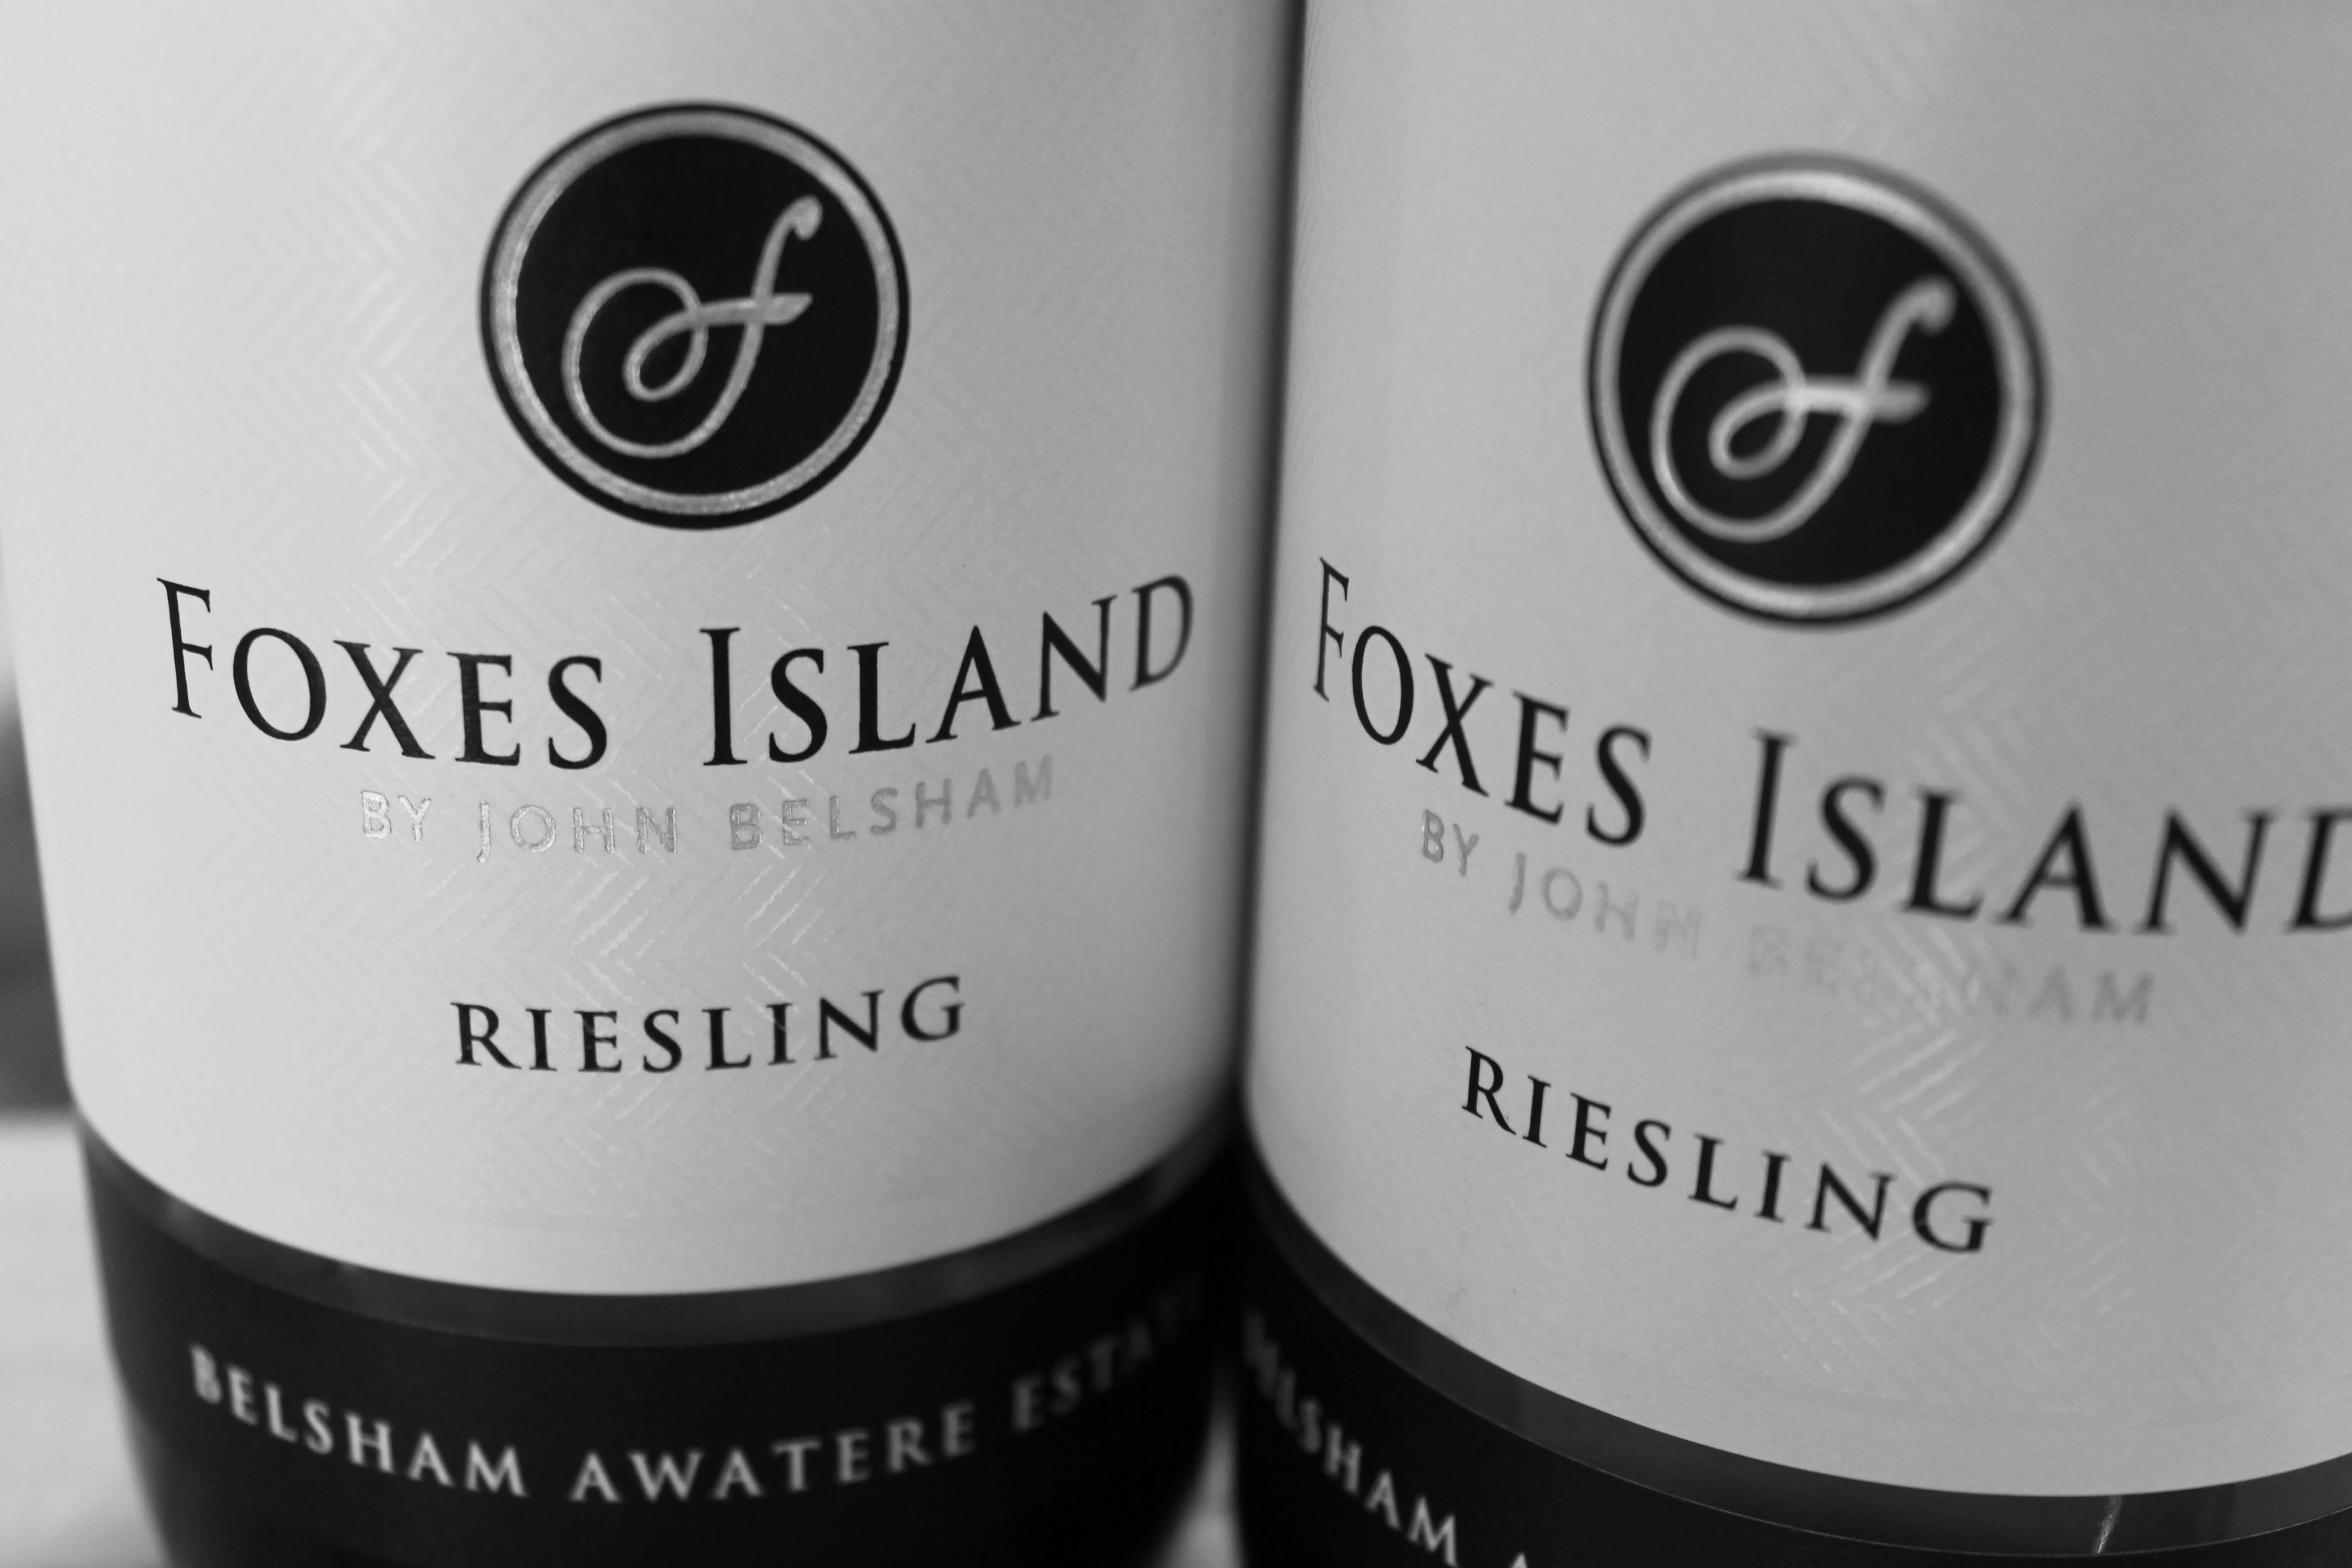 Foxes Island Riesling 2010 New Vintage Release www.foxes-island.co.nz